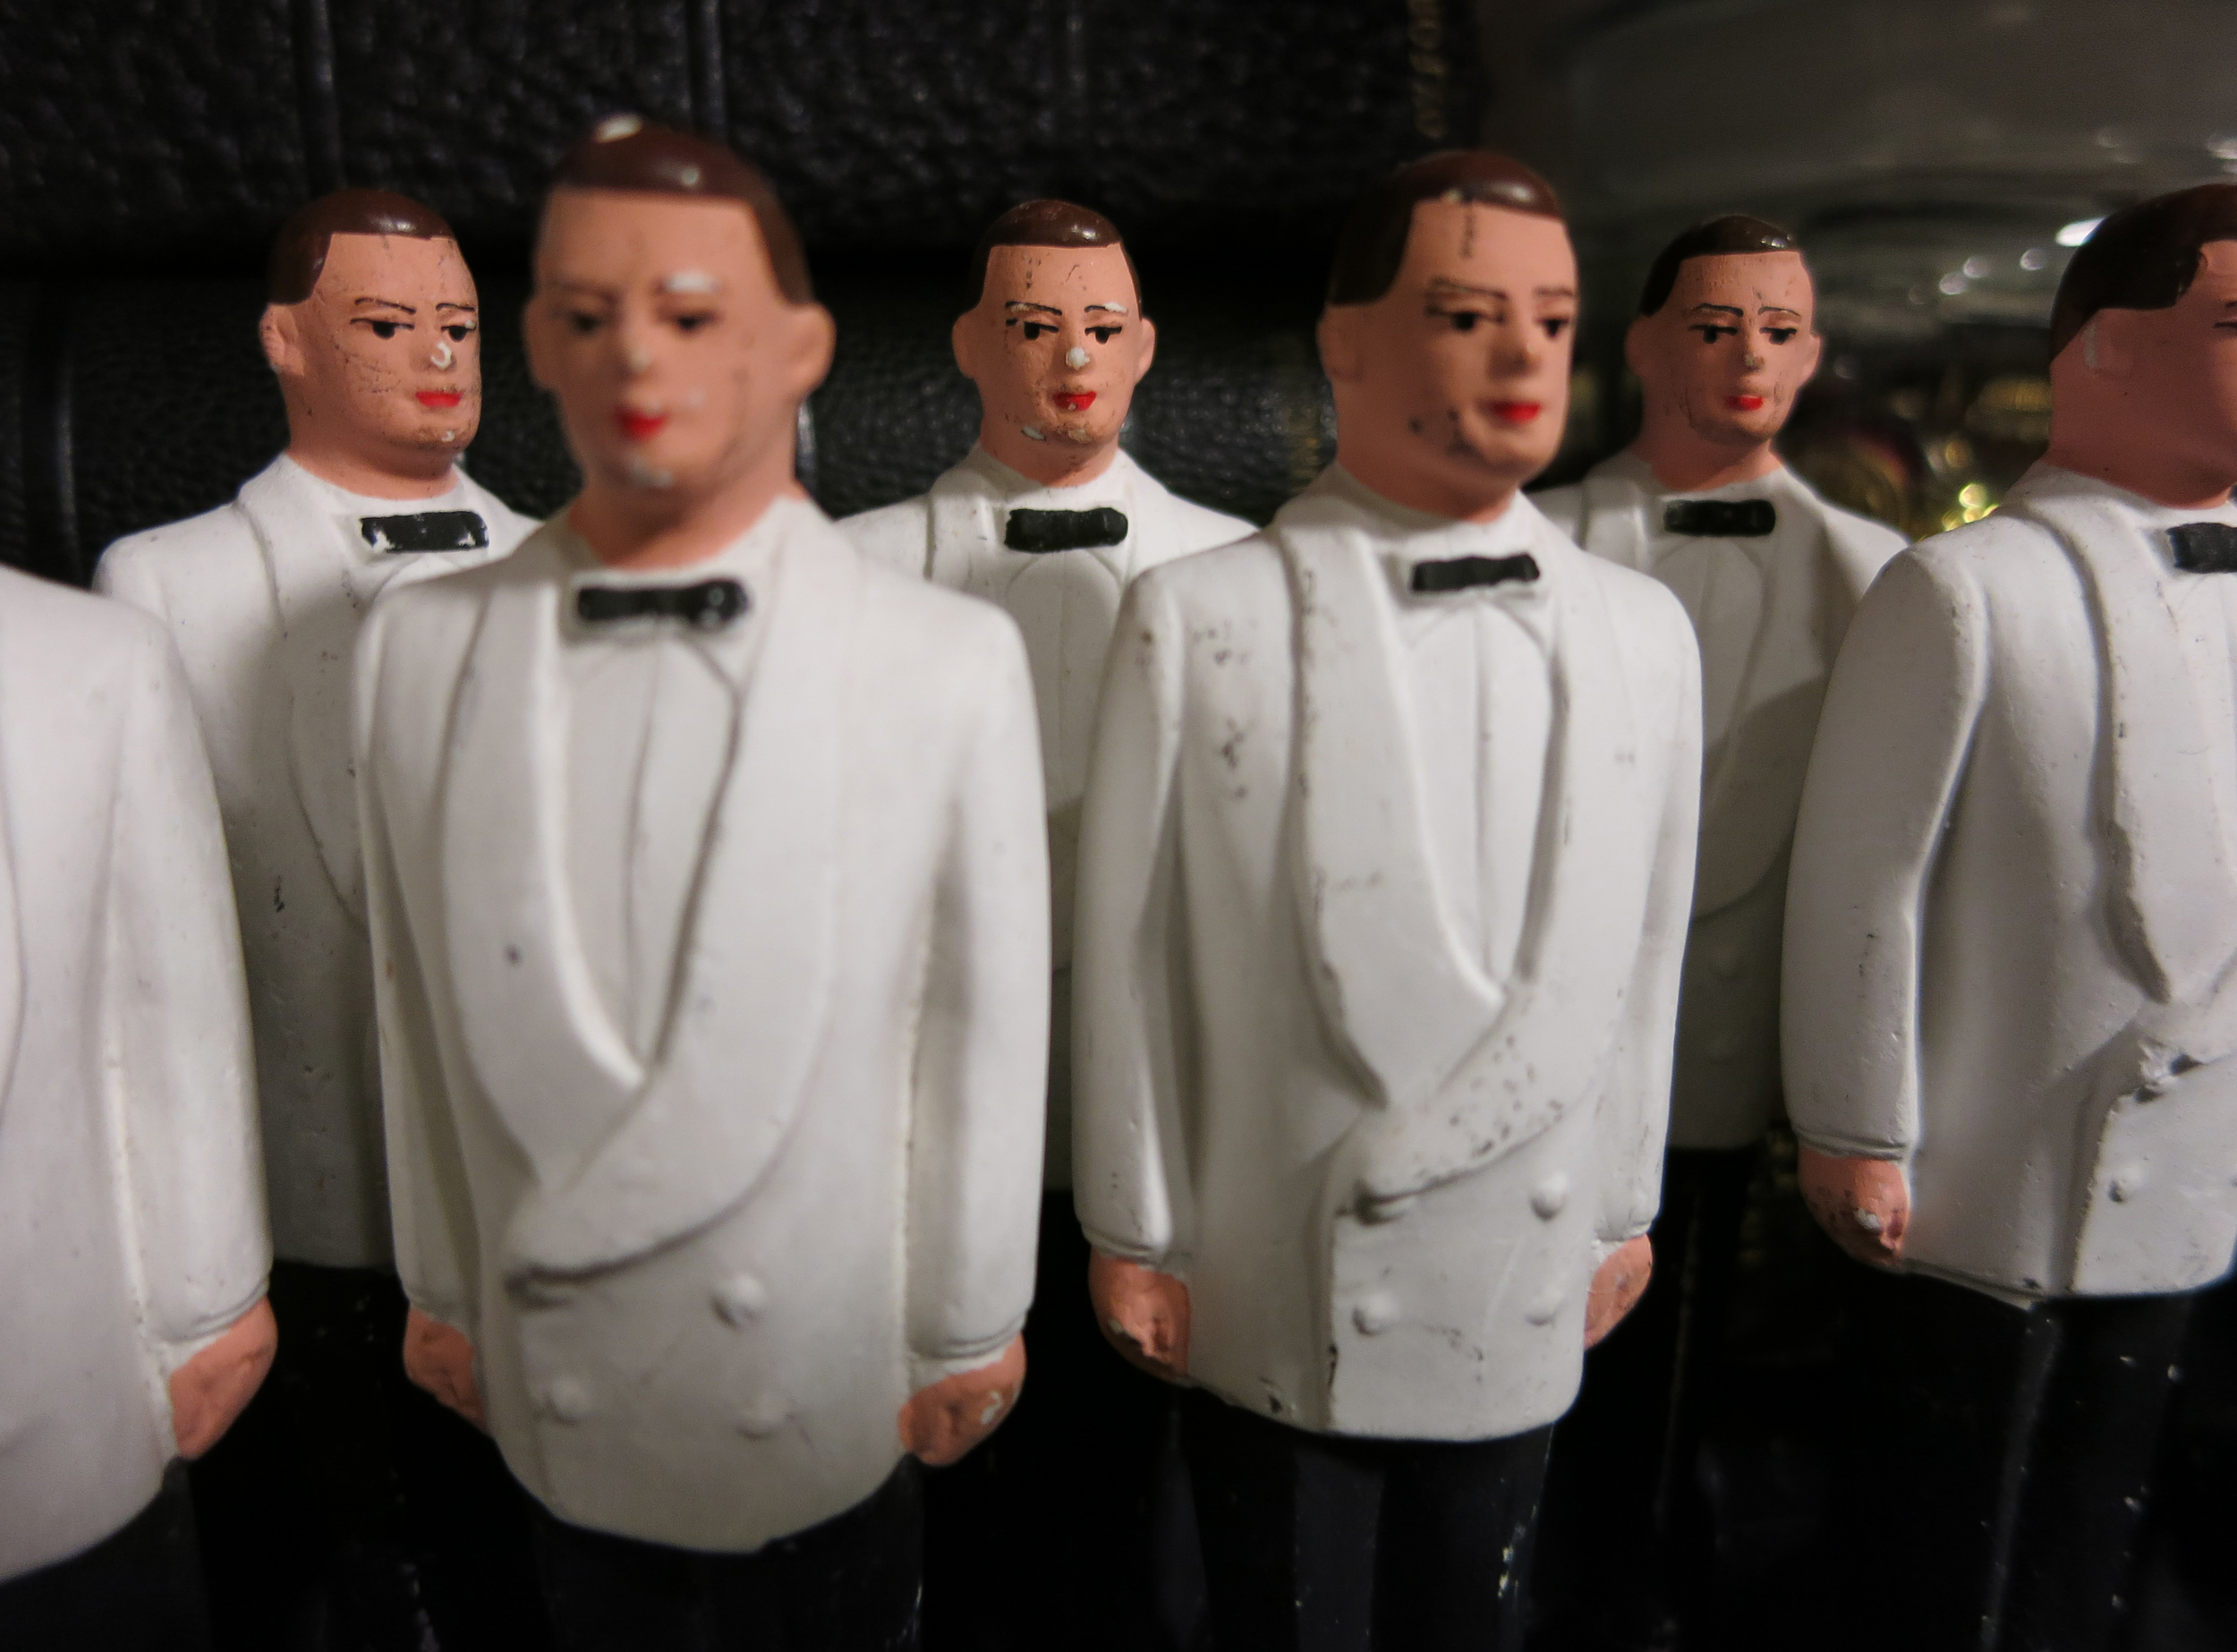 groom_figures_fuull.jpg